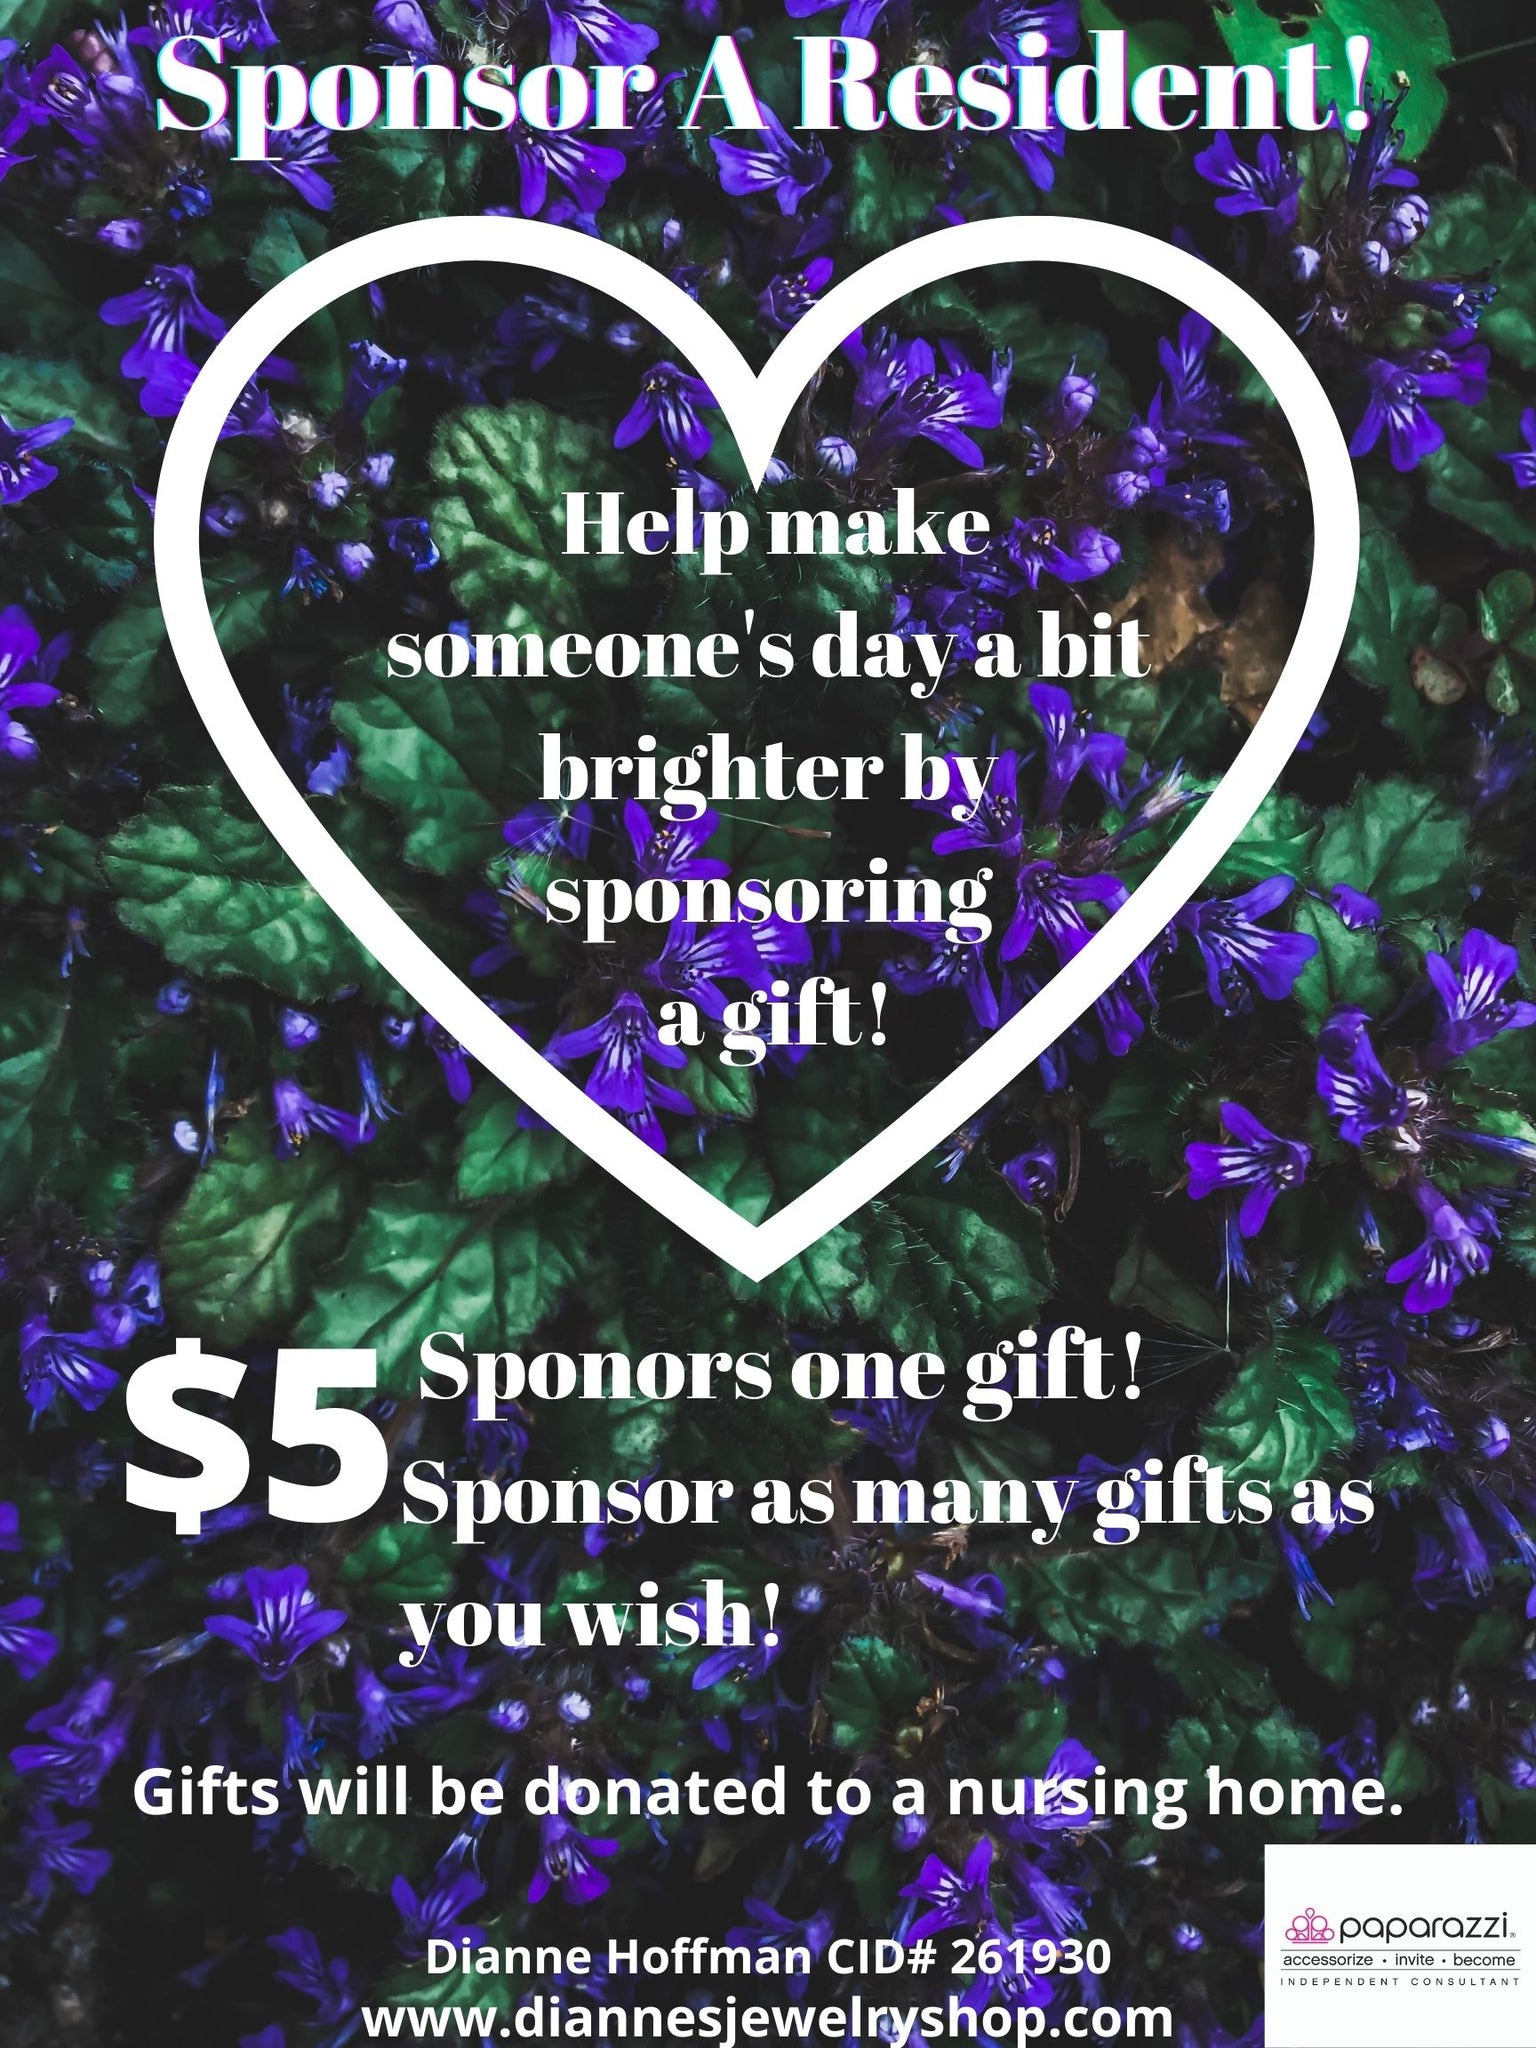 Sponsor A Resident with a $5 Gift